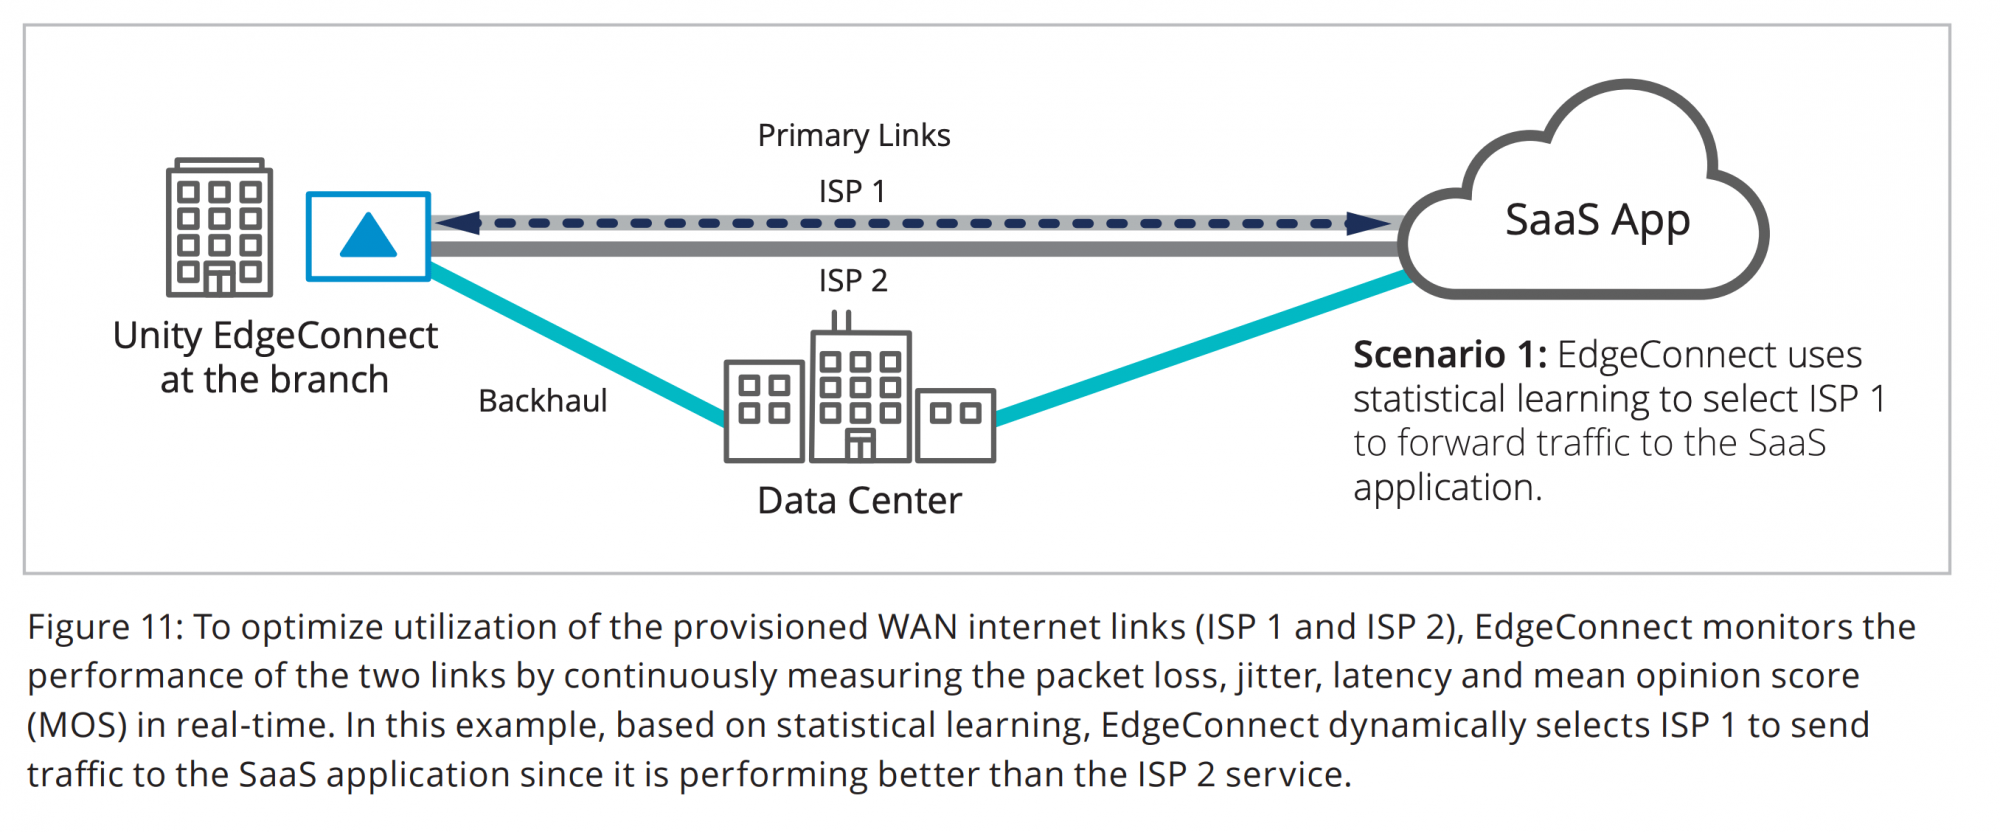 Figure 11: To optimize utilization of the provisioned WAN internet links (ISP 1 and ISP 2), EdgeConnect monitors the performance of the two links by continuously measuring the packet loss, jitter, latency and mean opinion score (MOS) in real-time. In this example, based on statistical learning, EdgeConnect dynamically selects ISP 1 to send traffic to the SaaS application since it is performing better than the ISP 2 service.